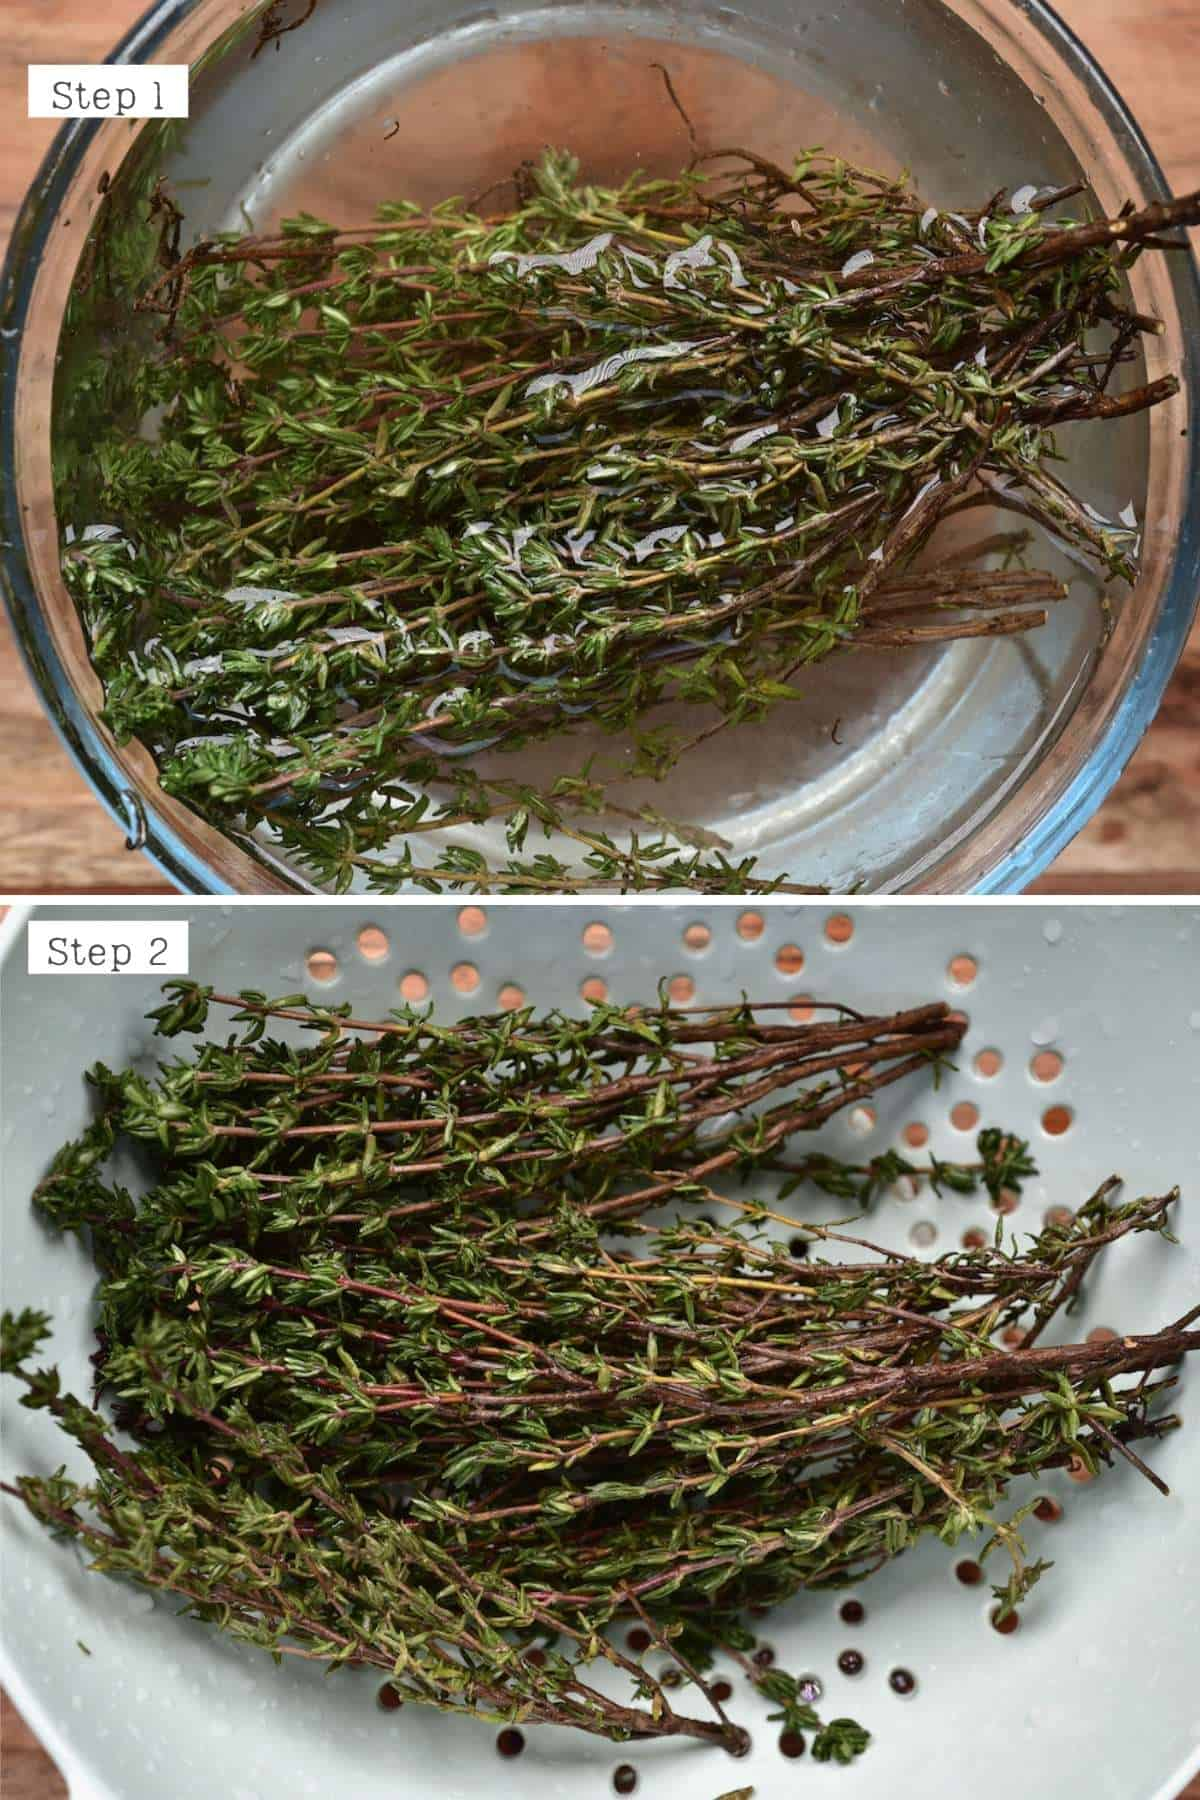 Steps for washing thyme